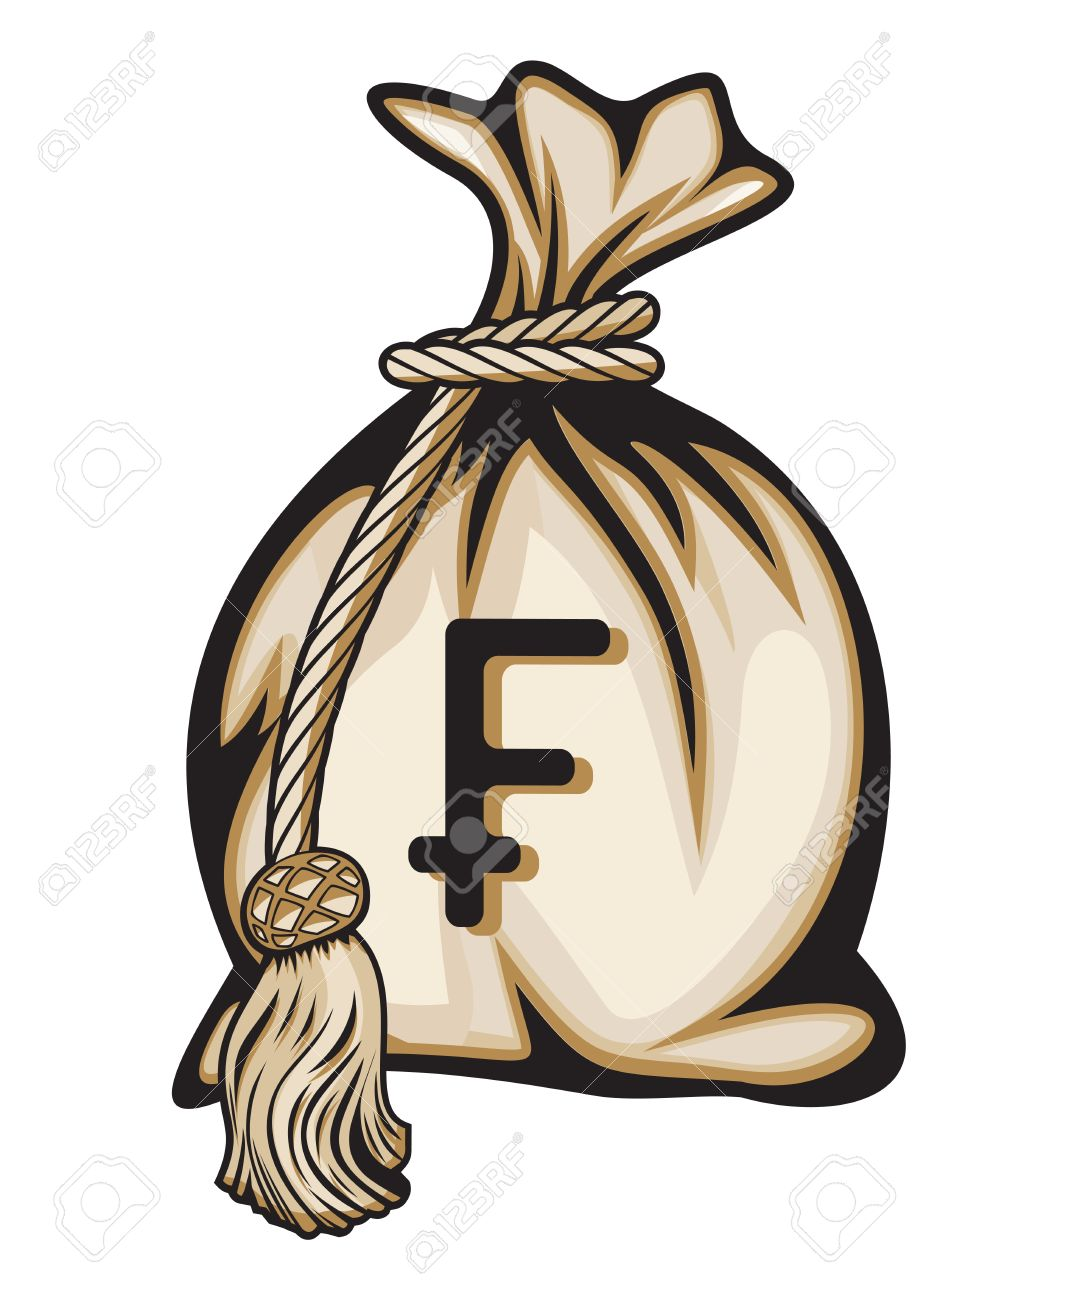 Money Bag With Swiss Franc Sign Illustration Royalty Free Cliparts.